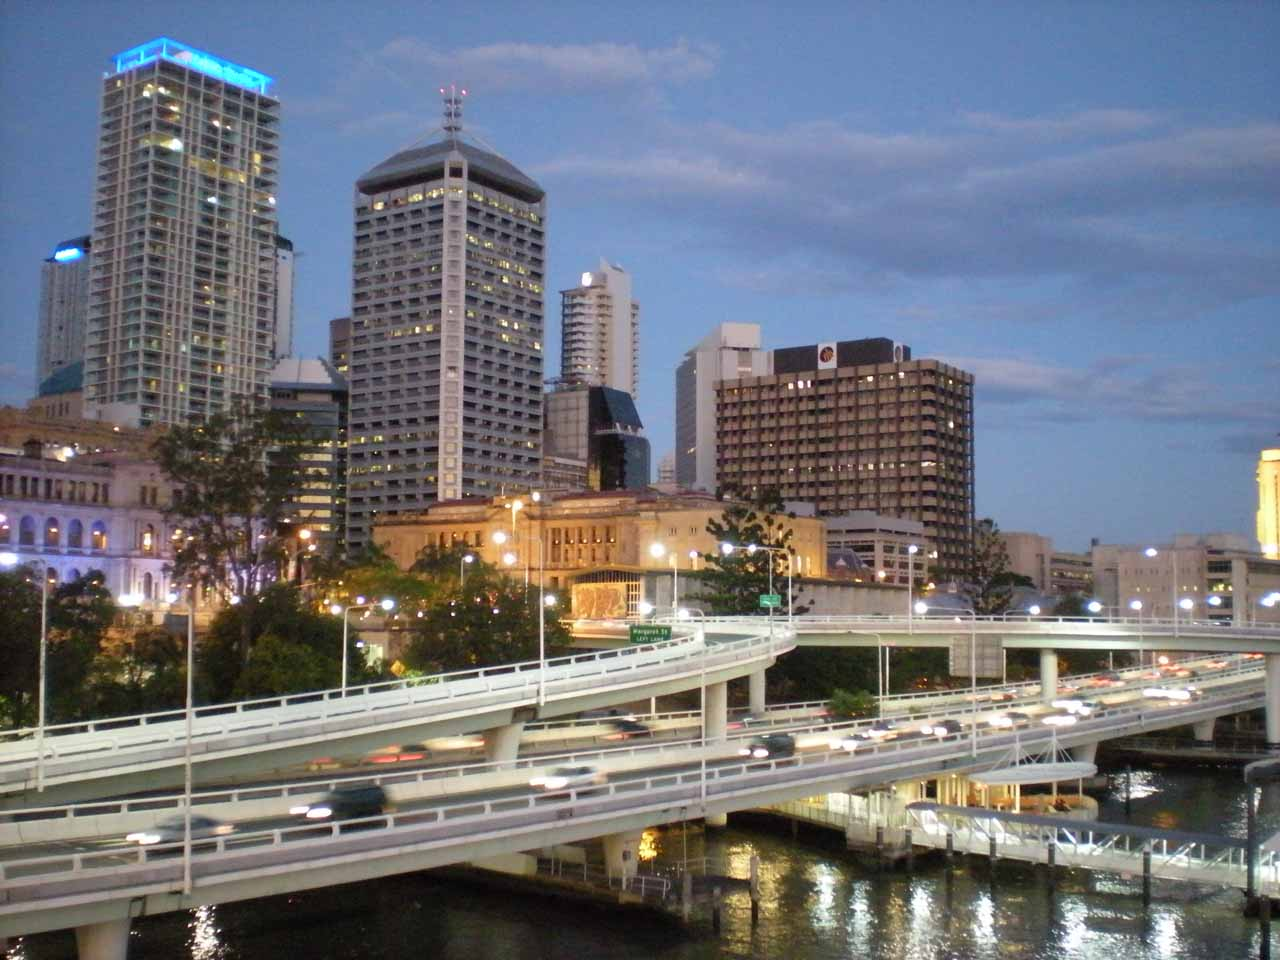 The Brisbane CBD in twilight